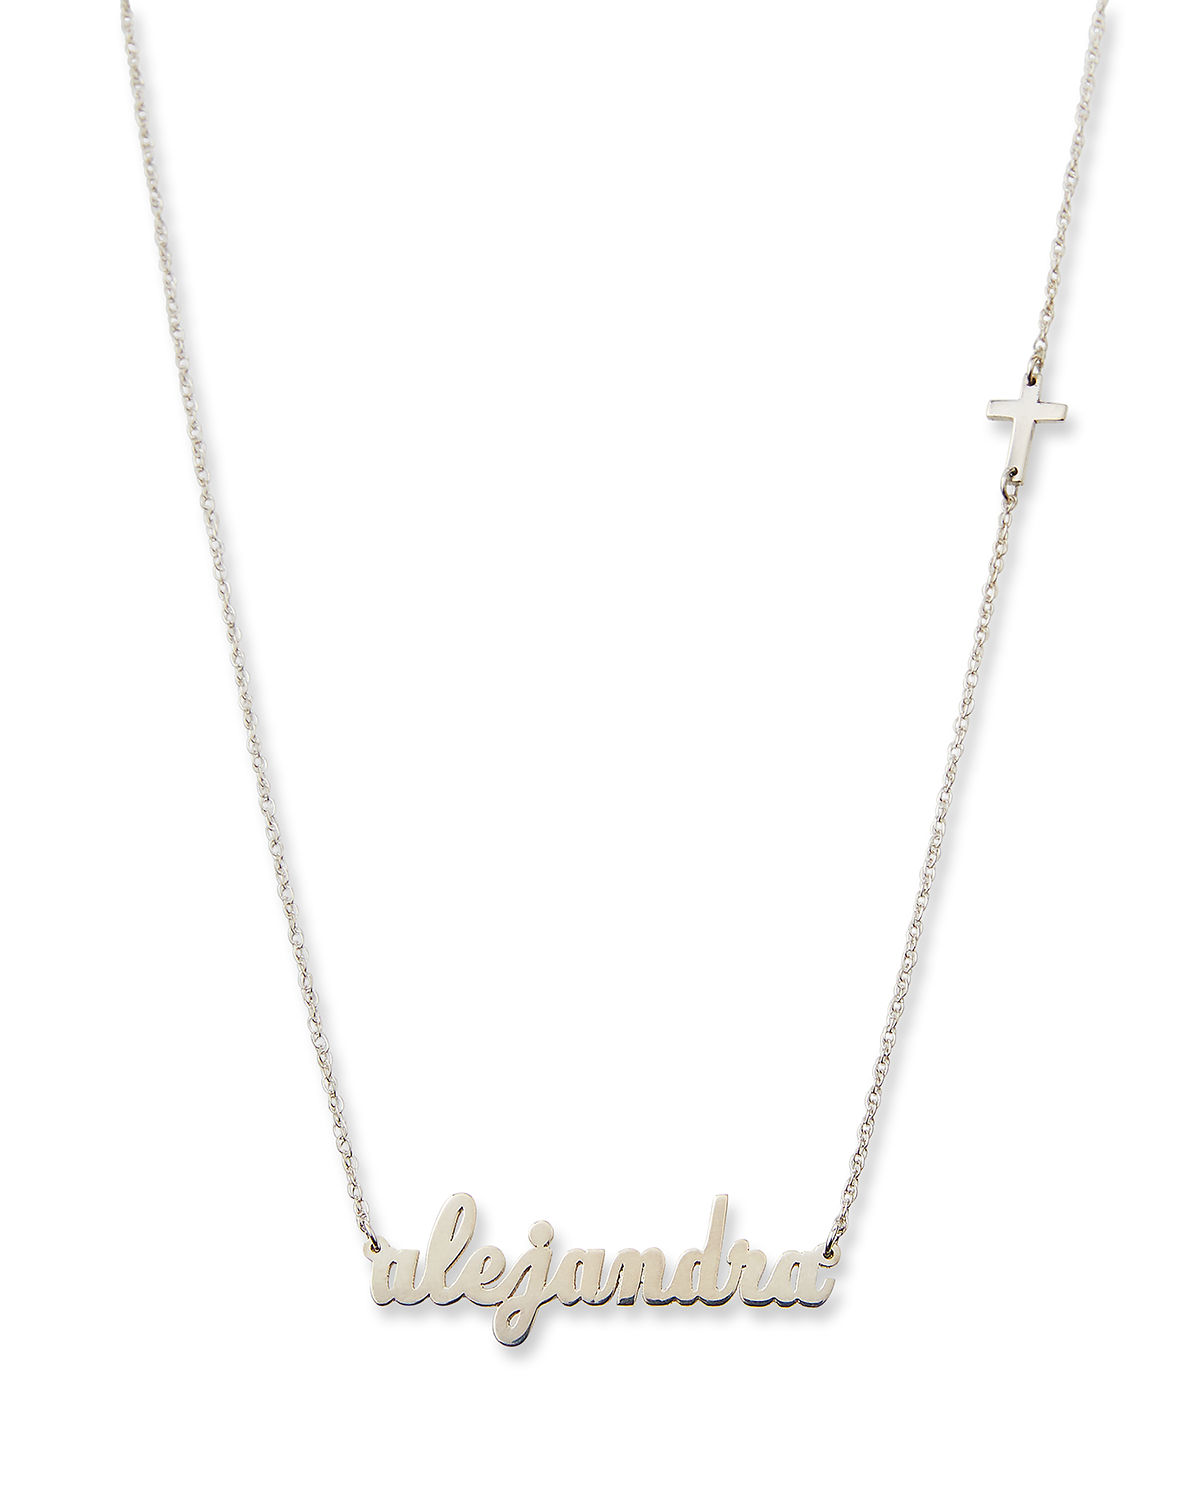 Abigail Personalized Cross Necklace